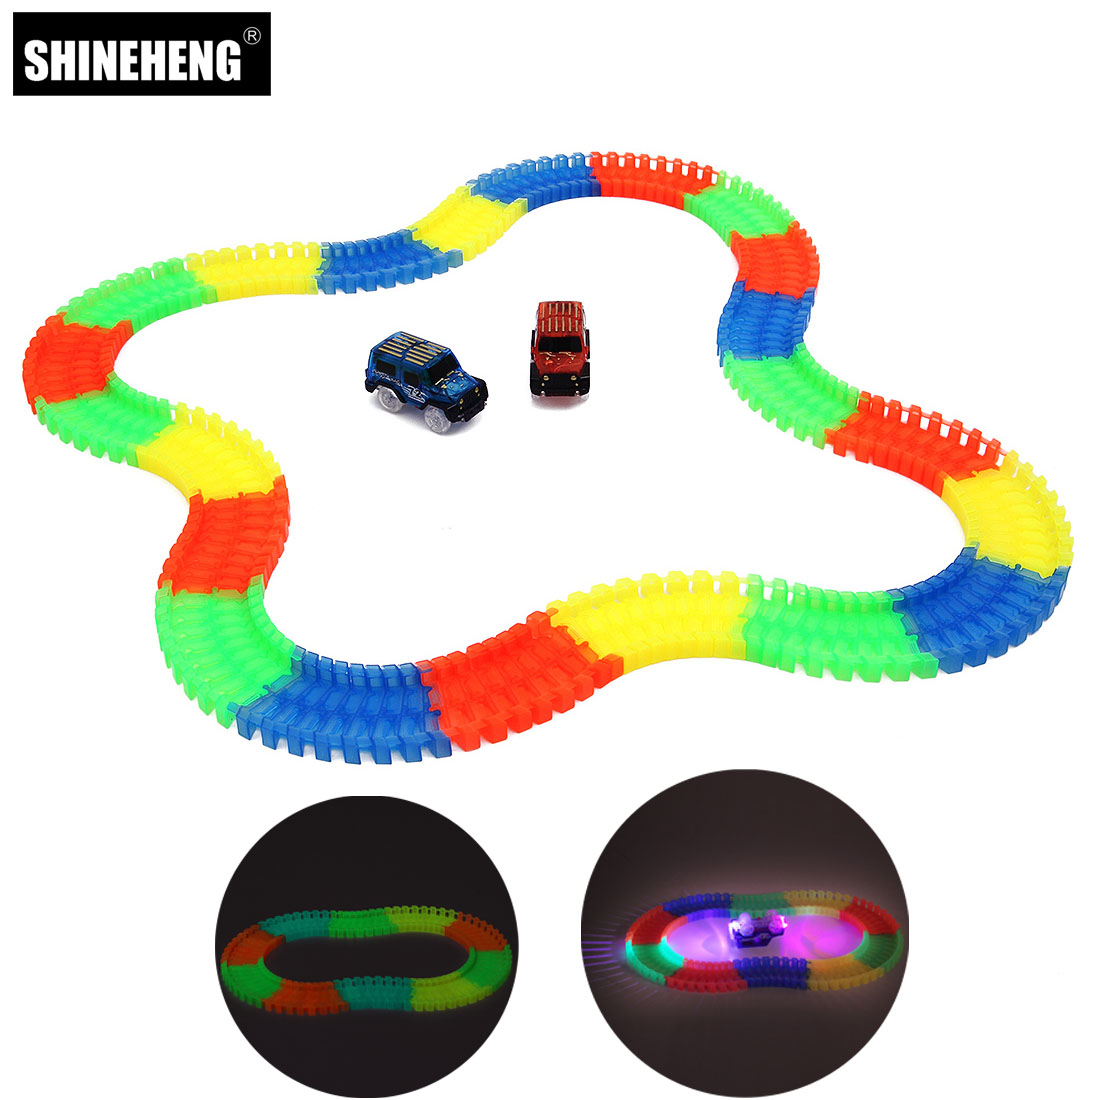 Shineheng Miracle Flexible Track Slot Car with LED Light Glows In The Dark Racing Track Railway Toys Gift for Children Kids